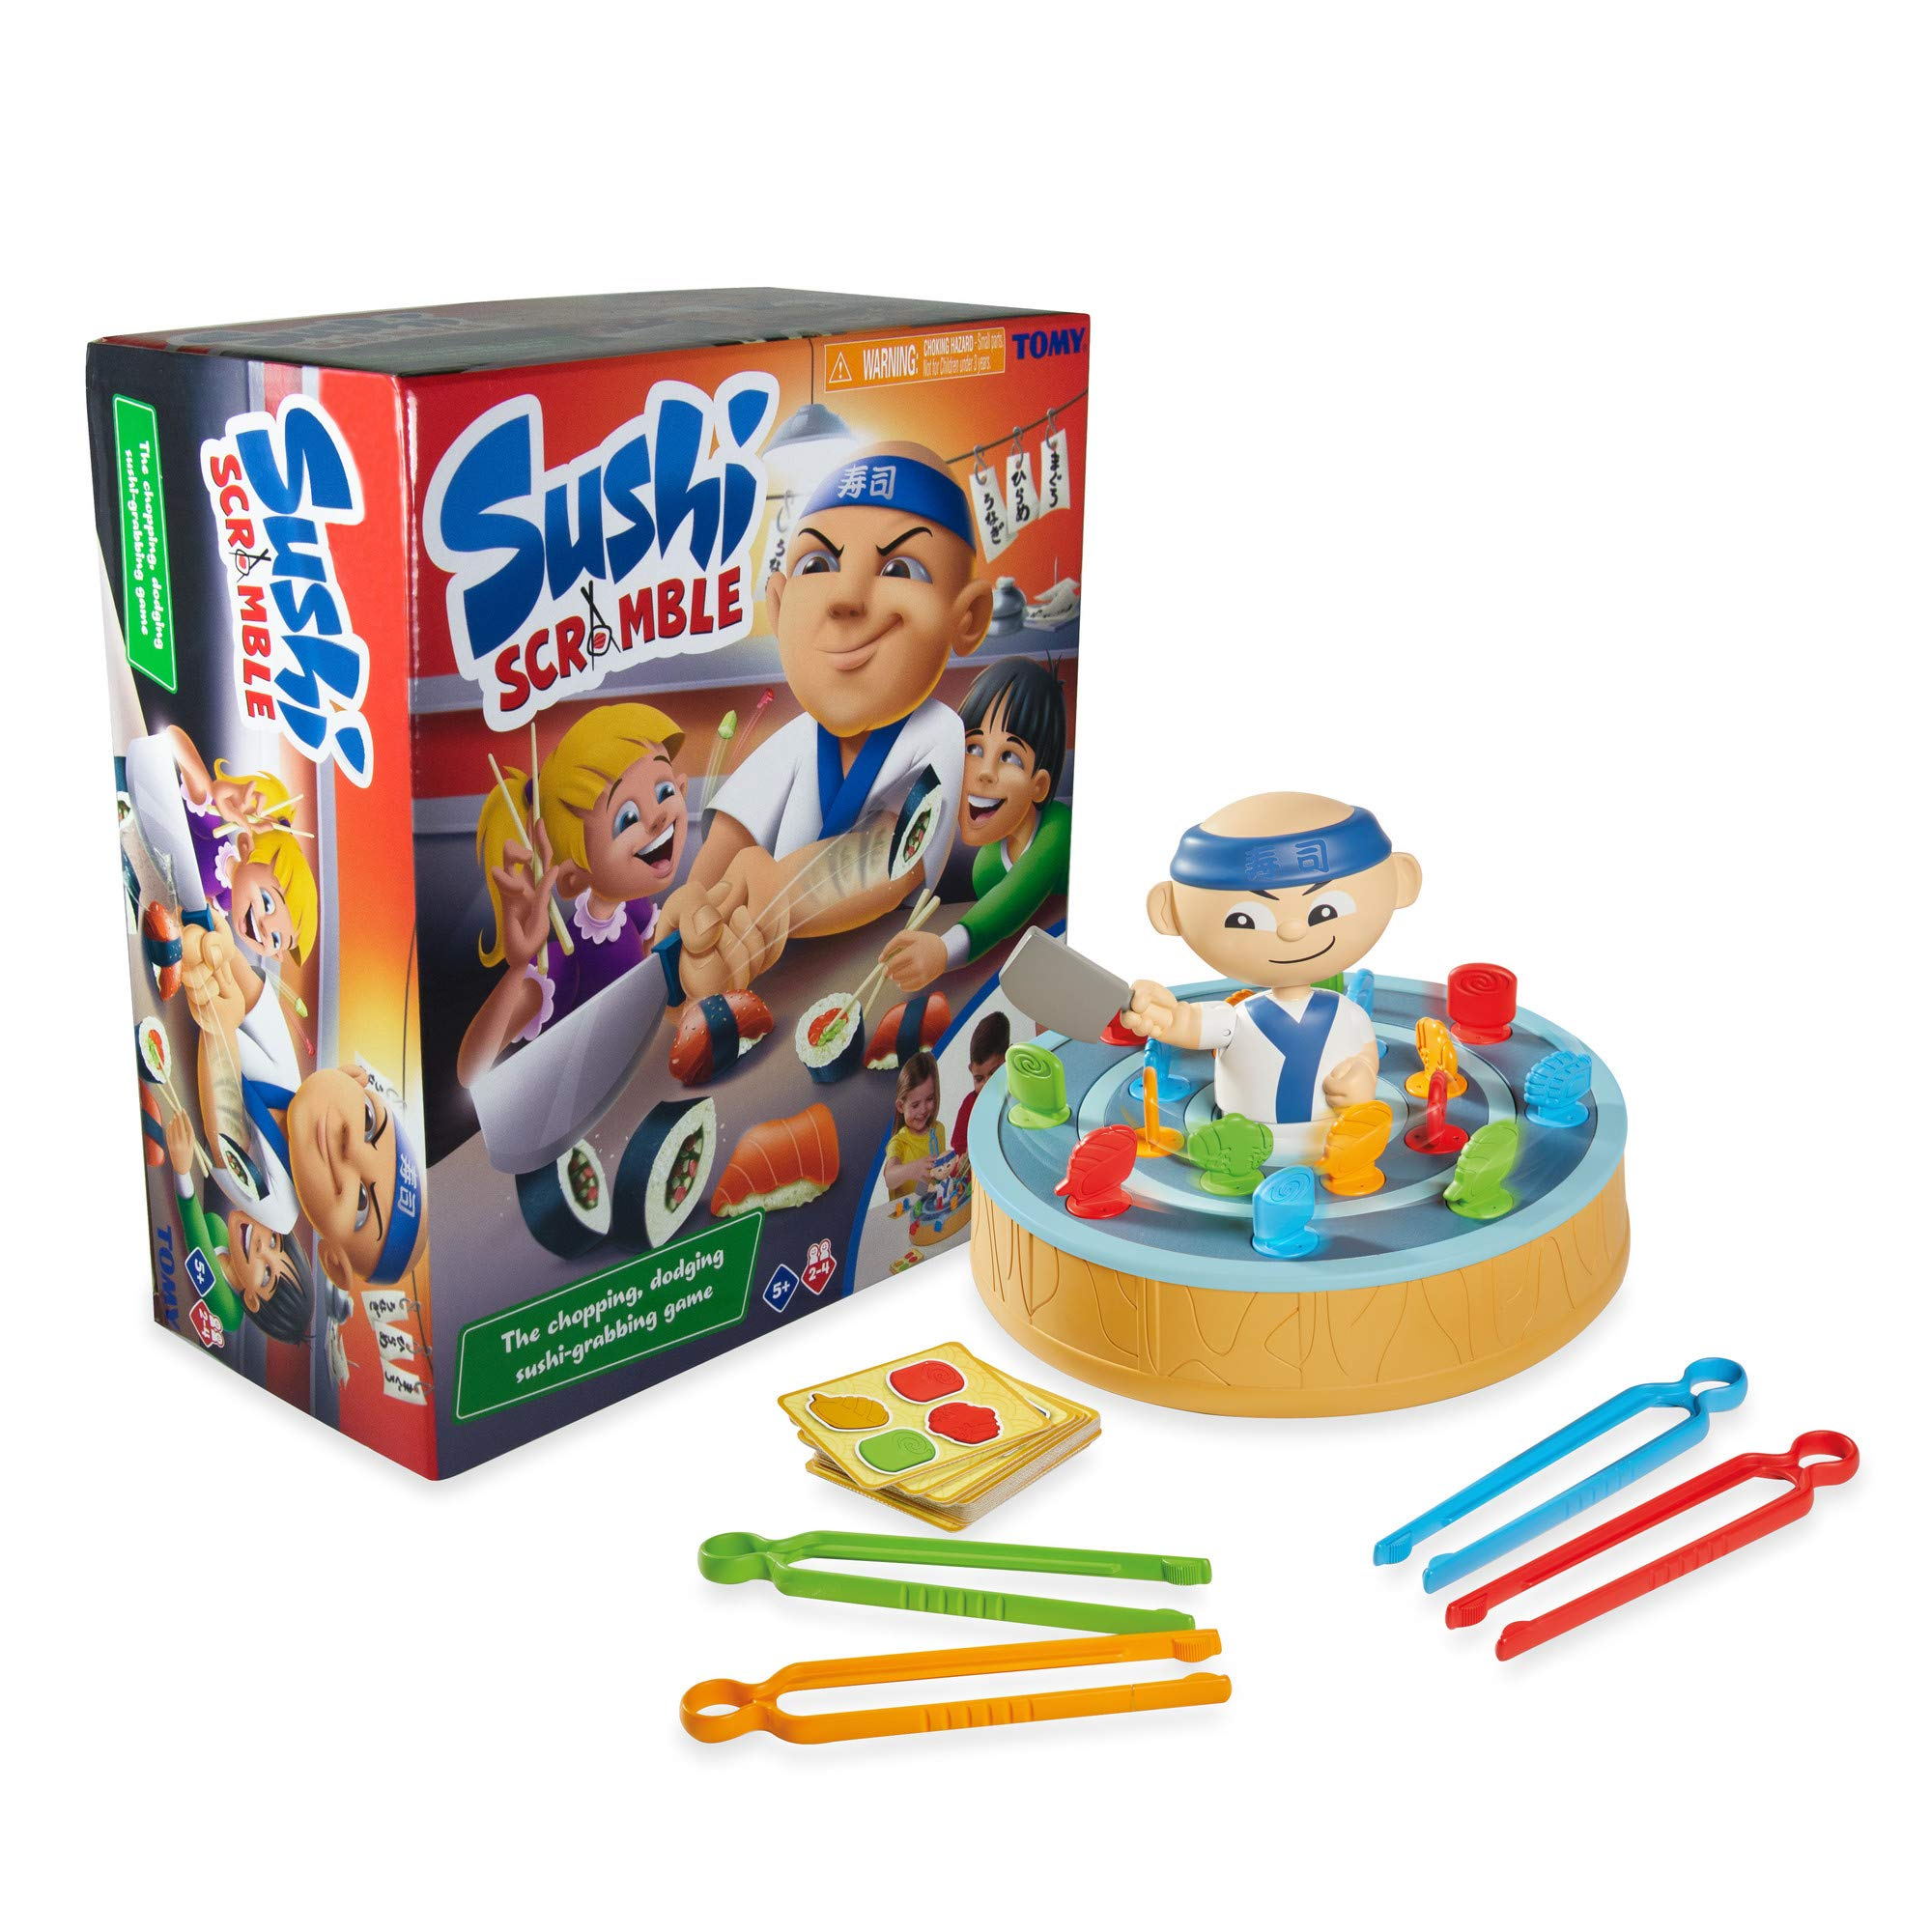 TOMY Sushi Scramble Kids Action Board Game | Preschool Family Board Games For Kids | Children Game Suitable for Ages 5 6 7 8+ Years